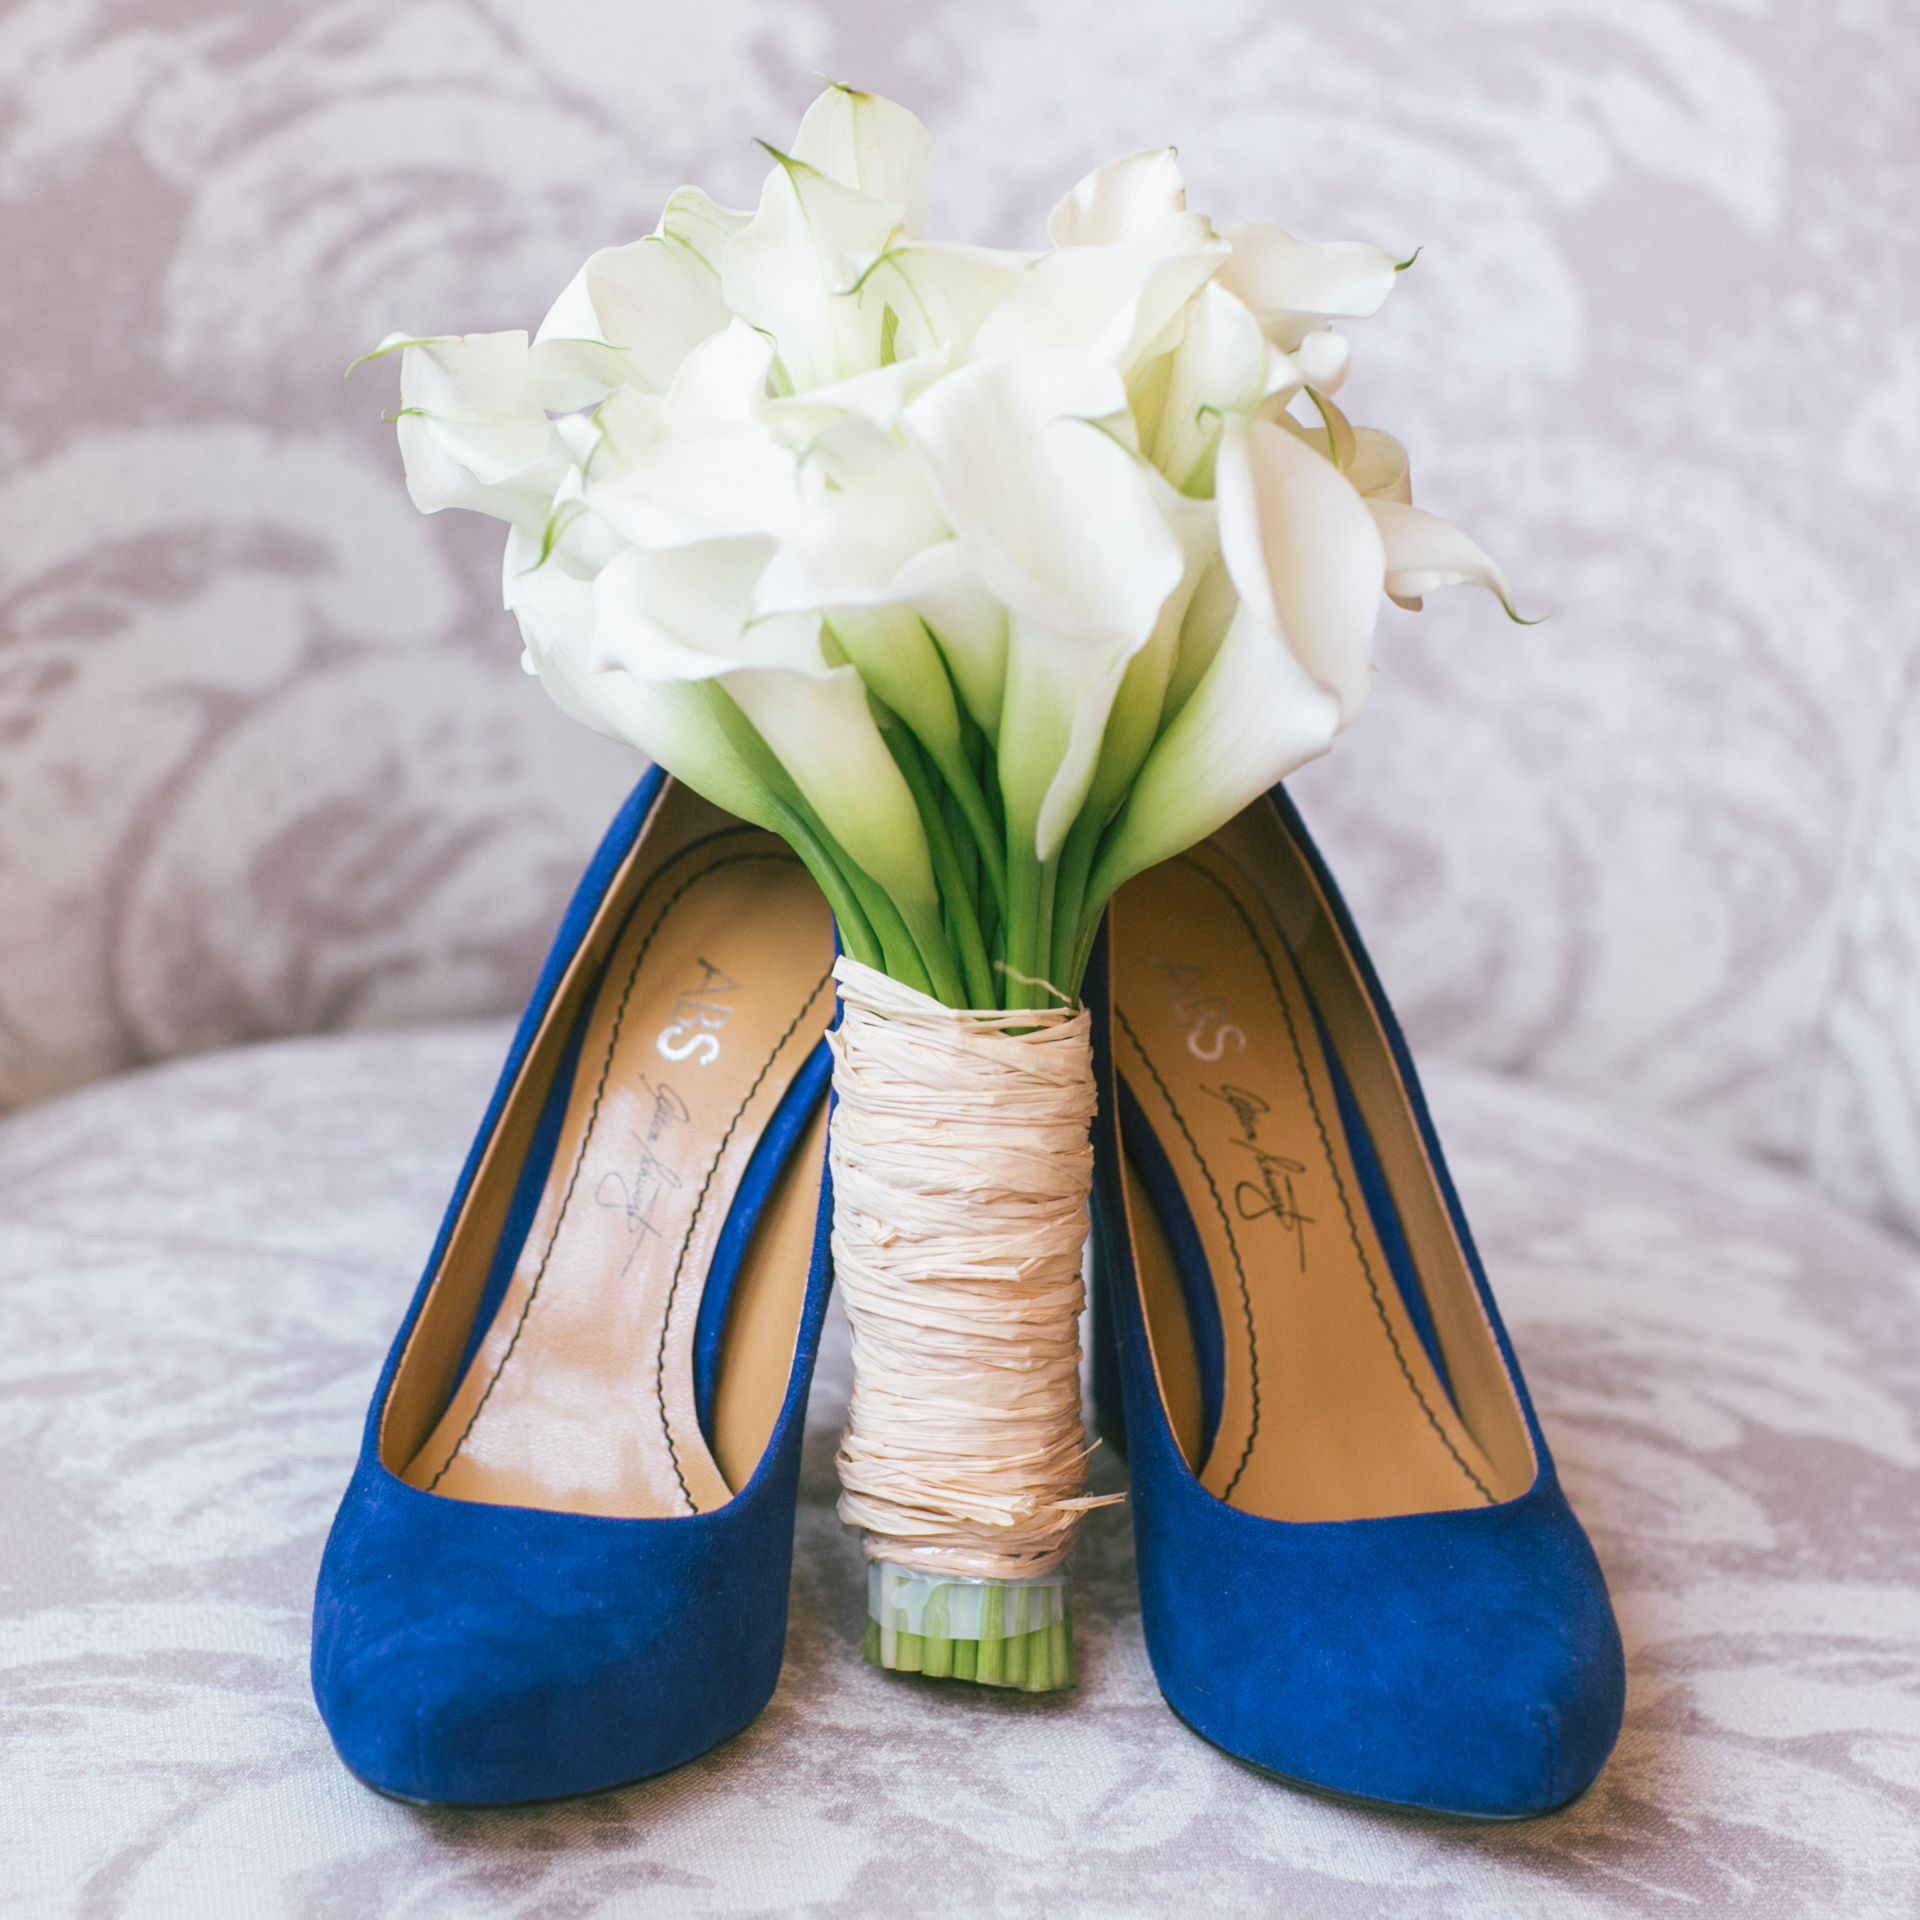 The bride's wedding shoes and flower bouquet